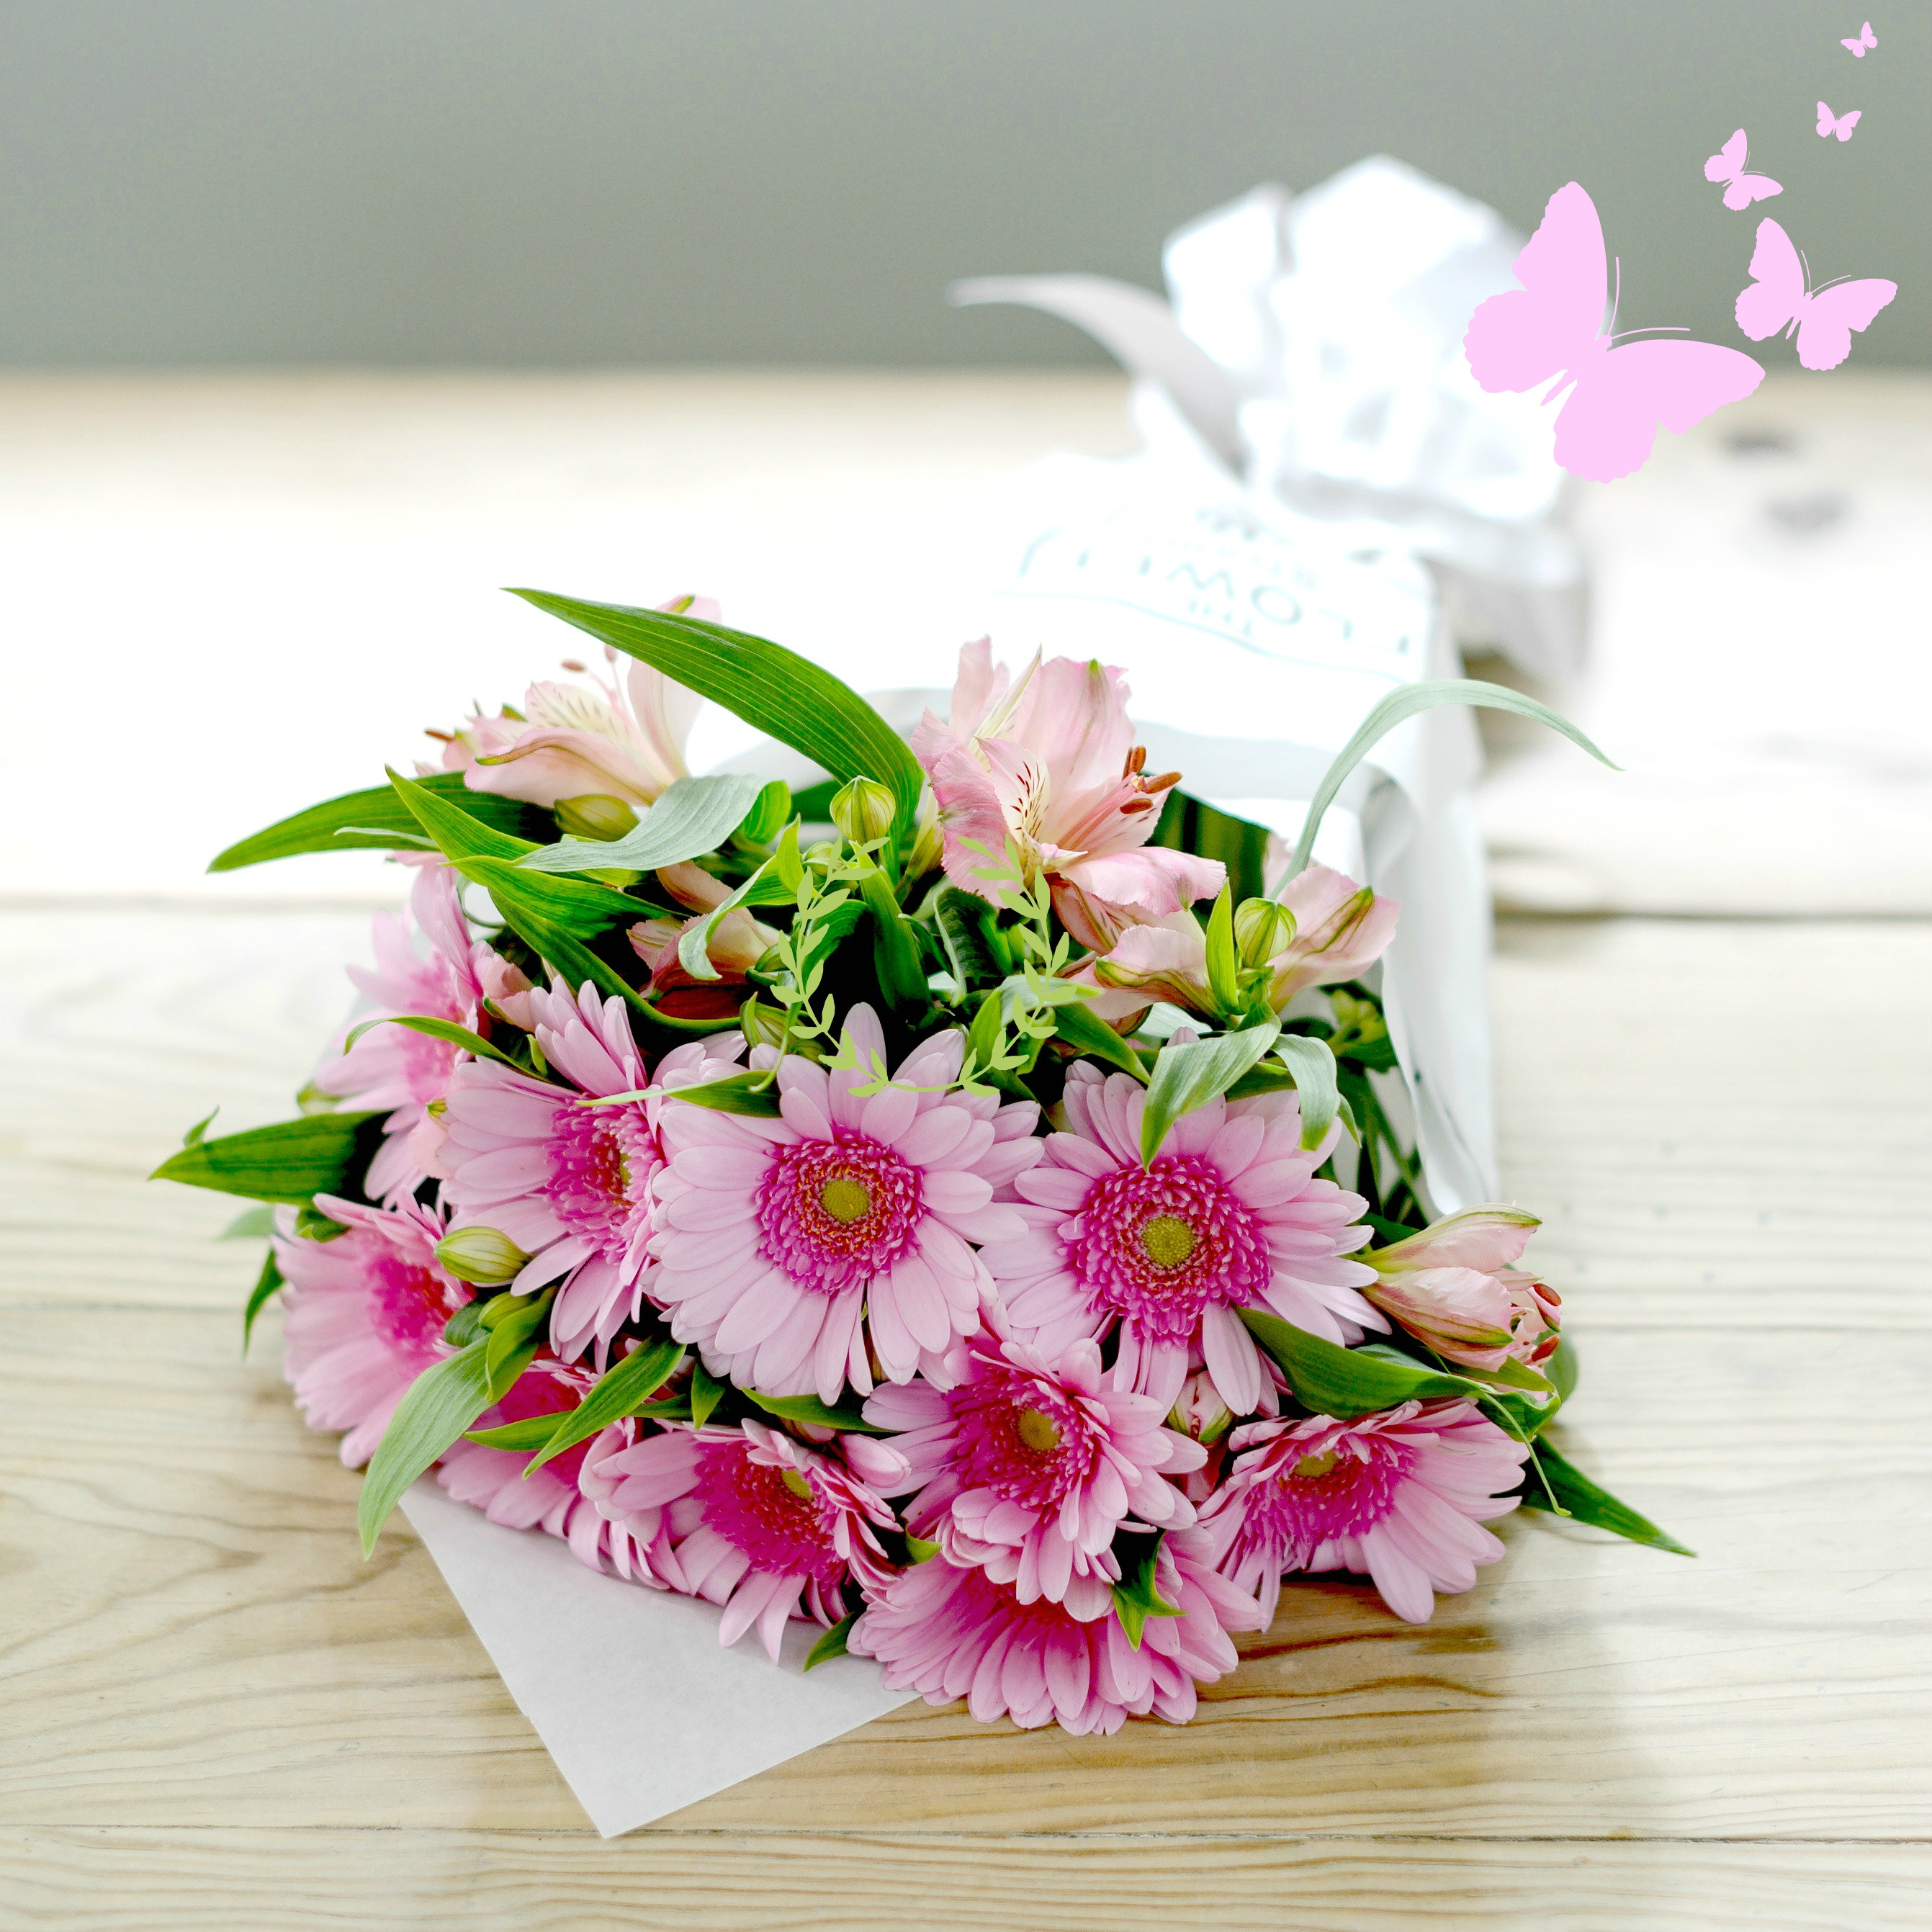 PINK-GERBERA-Alstroemeria-CUT-FLOWER-BUNCH.jpg